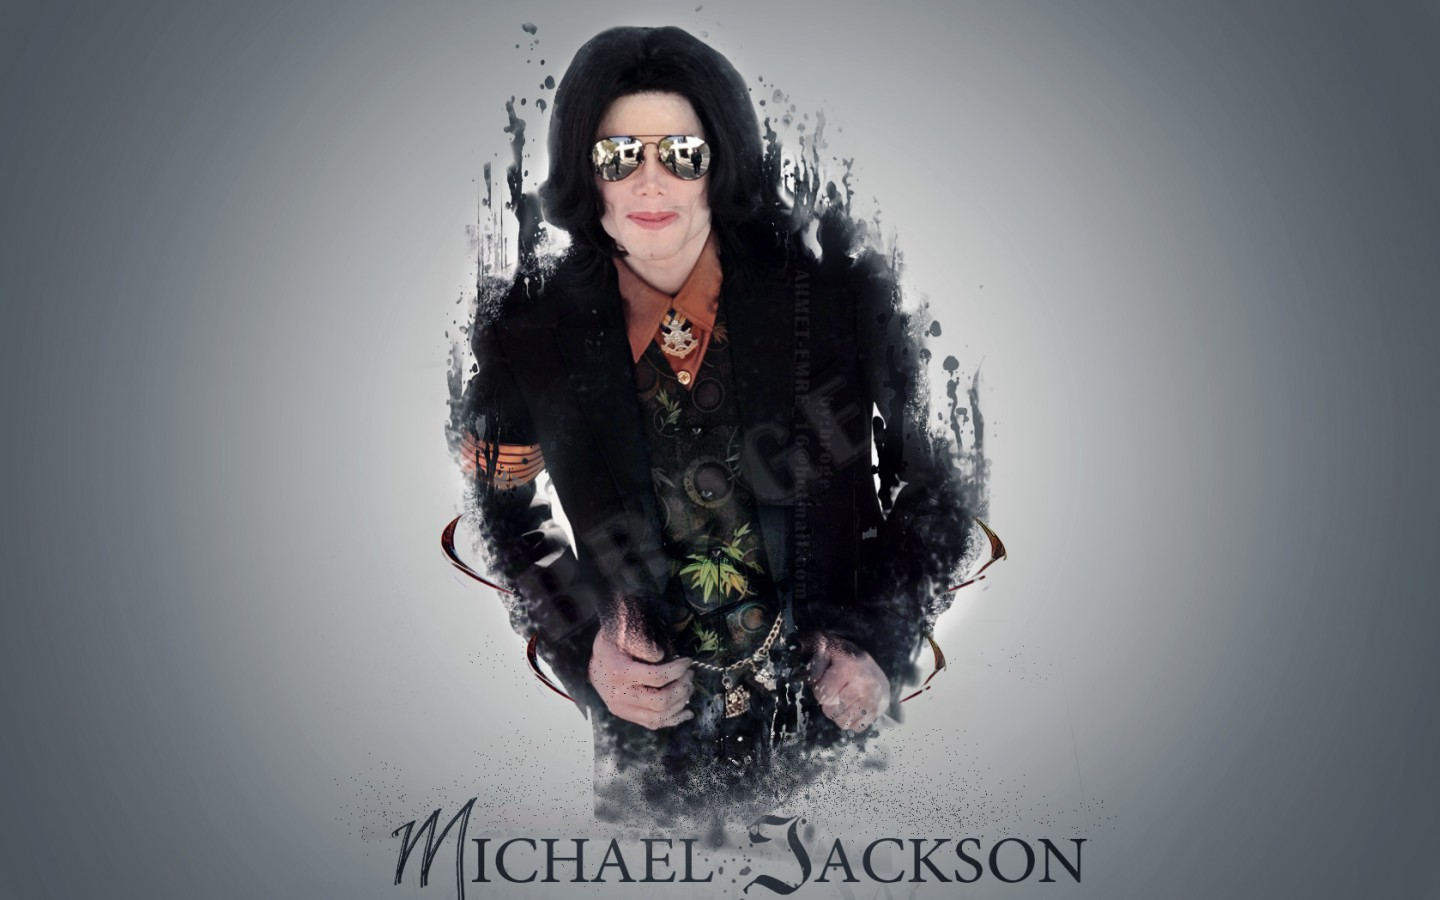 Michael Jackson Wallpapers HD smart